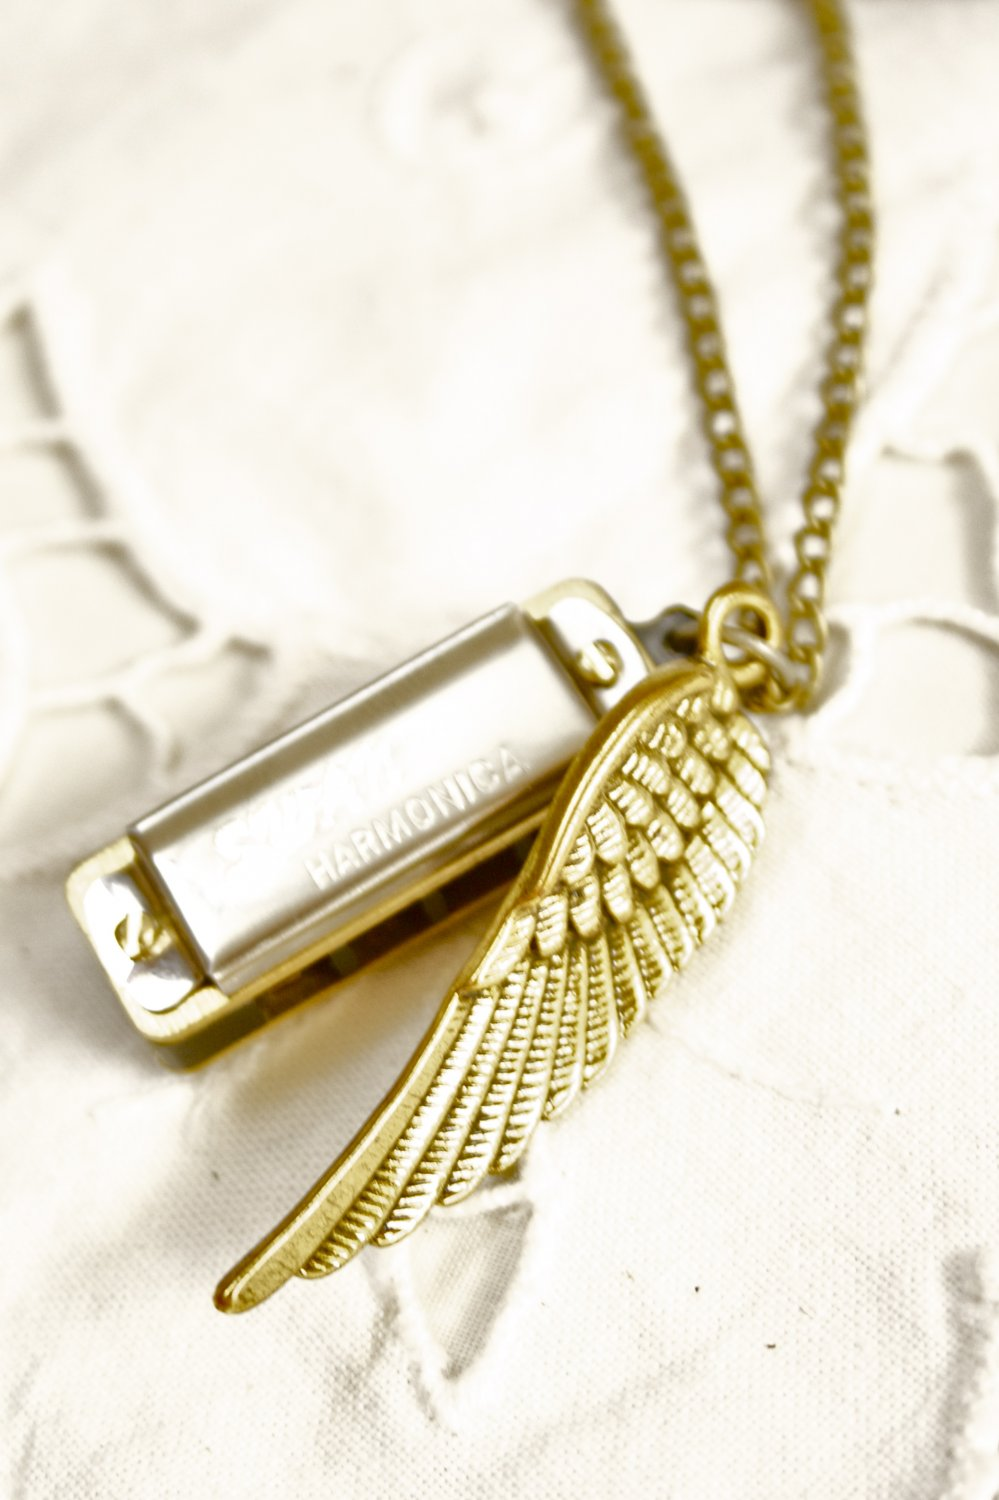 'Songbird' Mini Harmonica Necklace w Bird Wing Charm Silver Harmonica Pendant